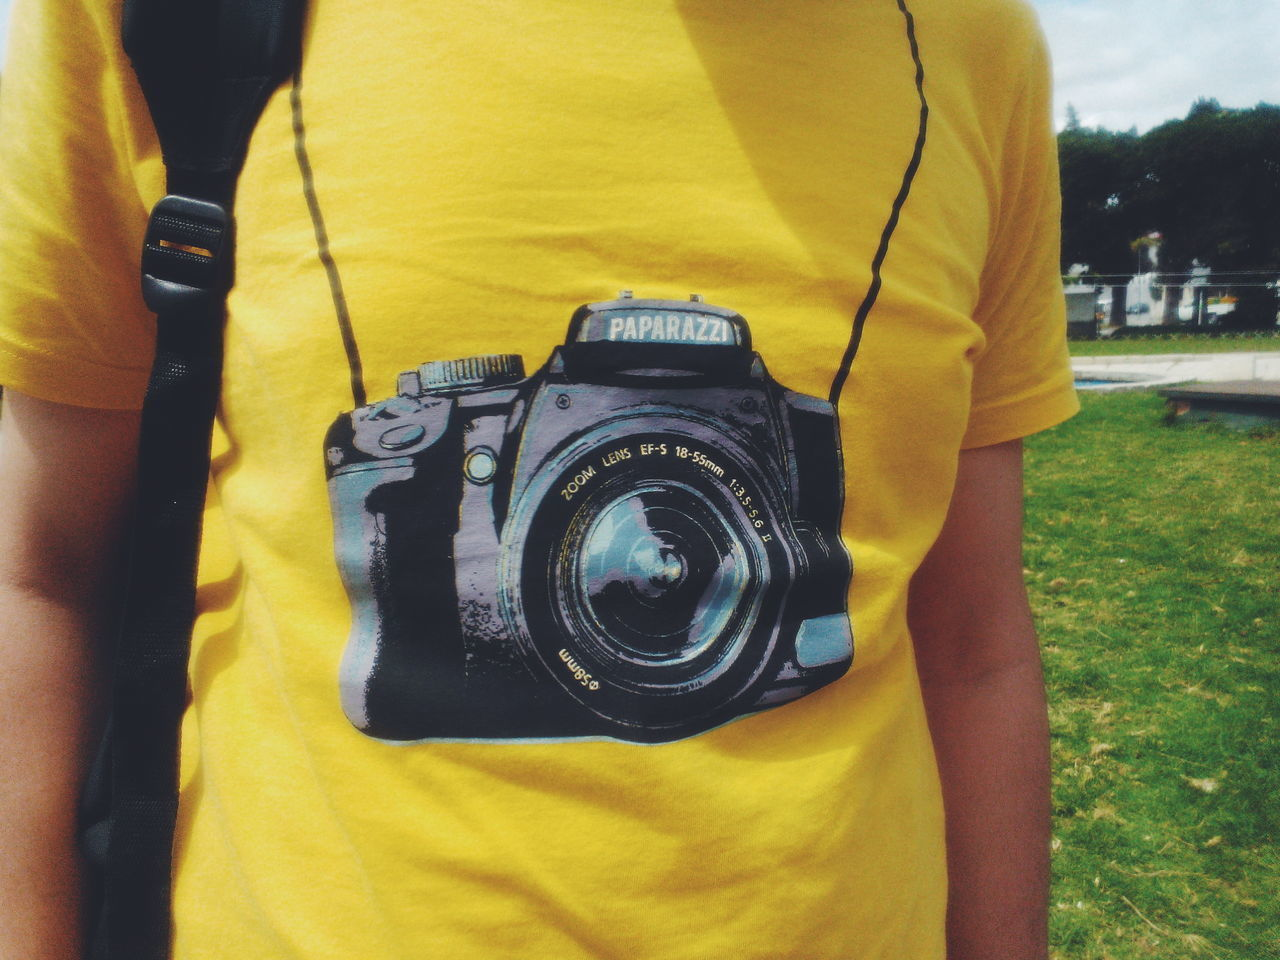 midsection, one person, photography themes, yellow, real people, camera - photographic equipment, technology, casual clothing, leisure activity, holding, focus on foreground, men, lifestyles, day, close-up, standing, photographing, activity, digital camera, photographer, slr camera